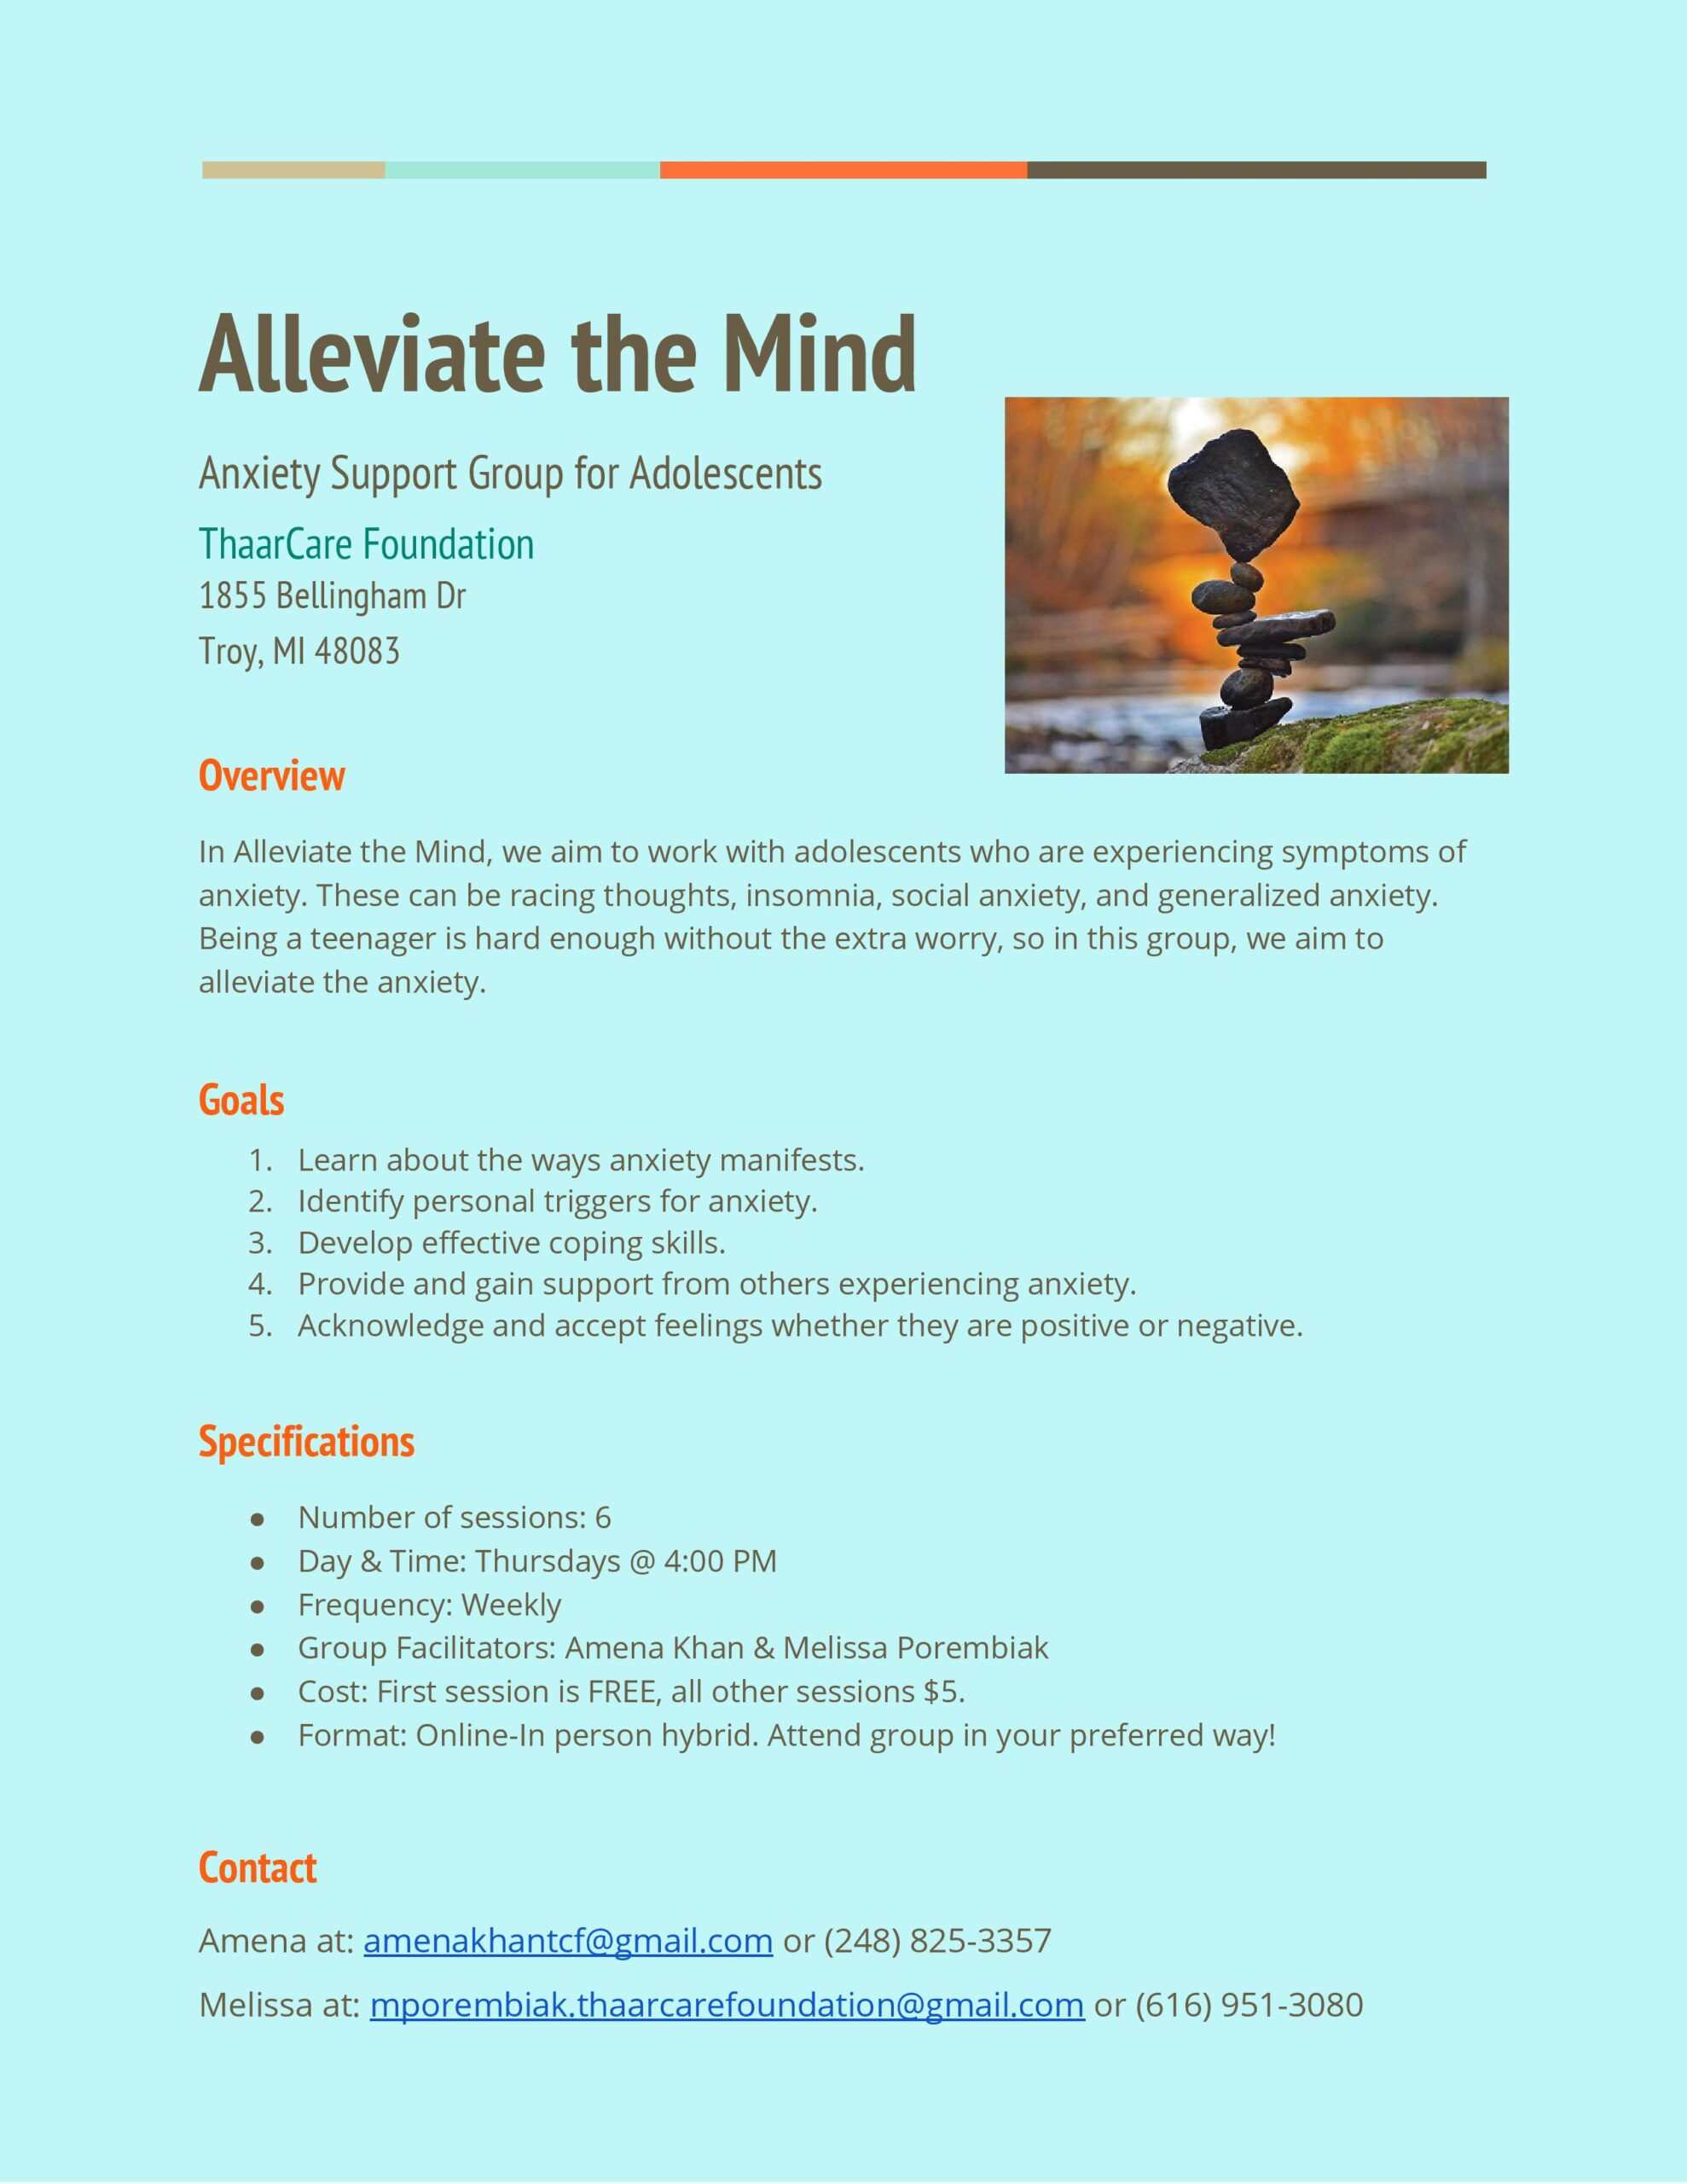 Alleviate the Mind Group